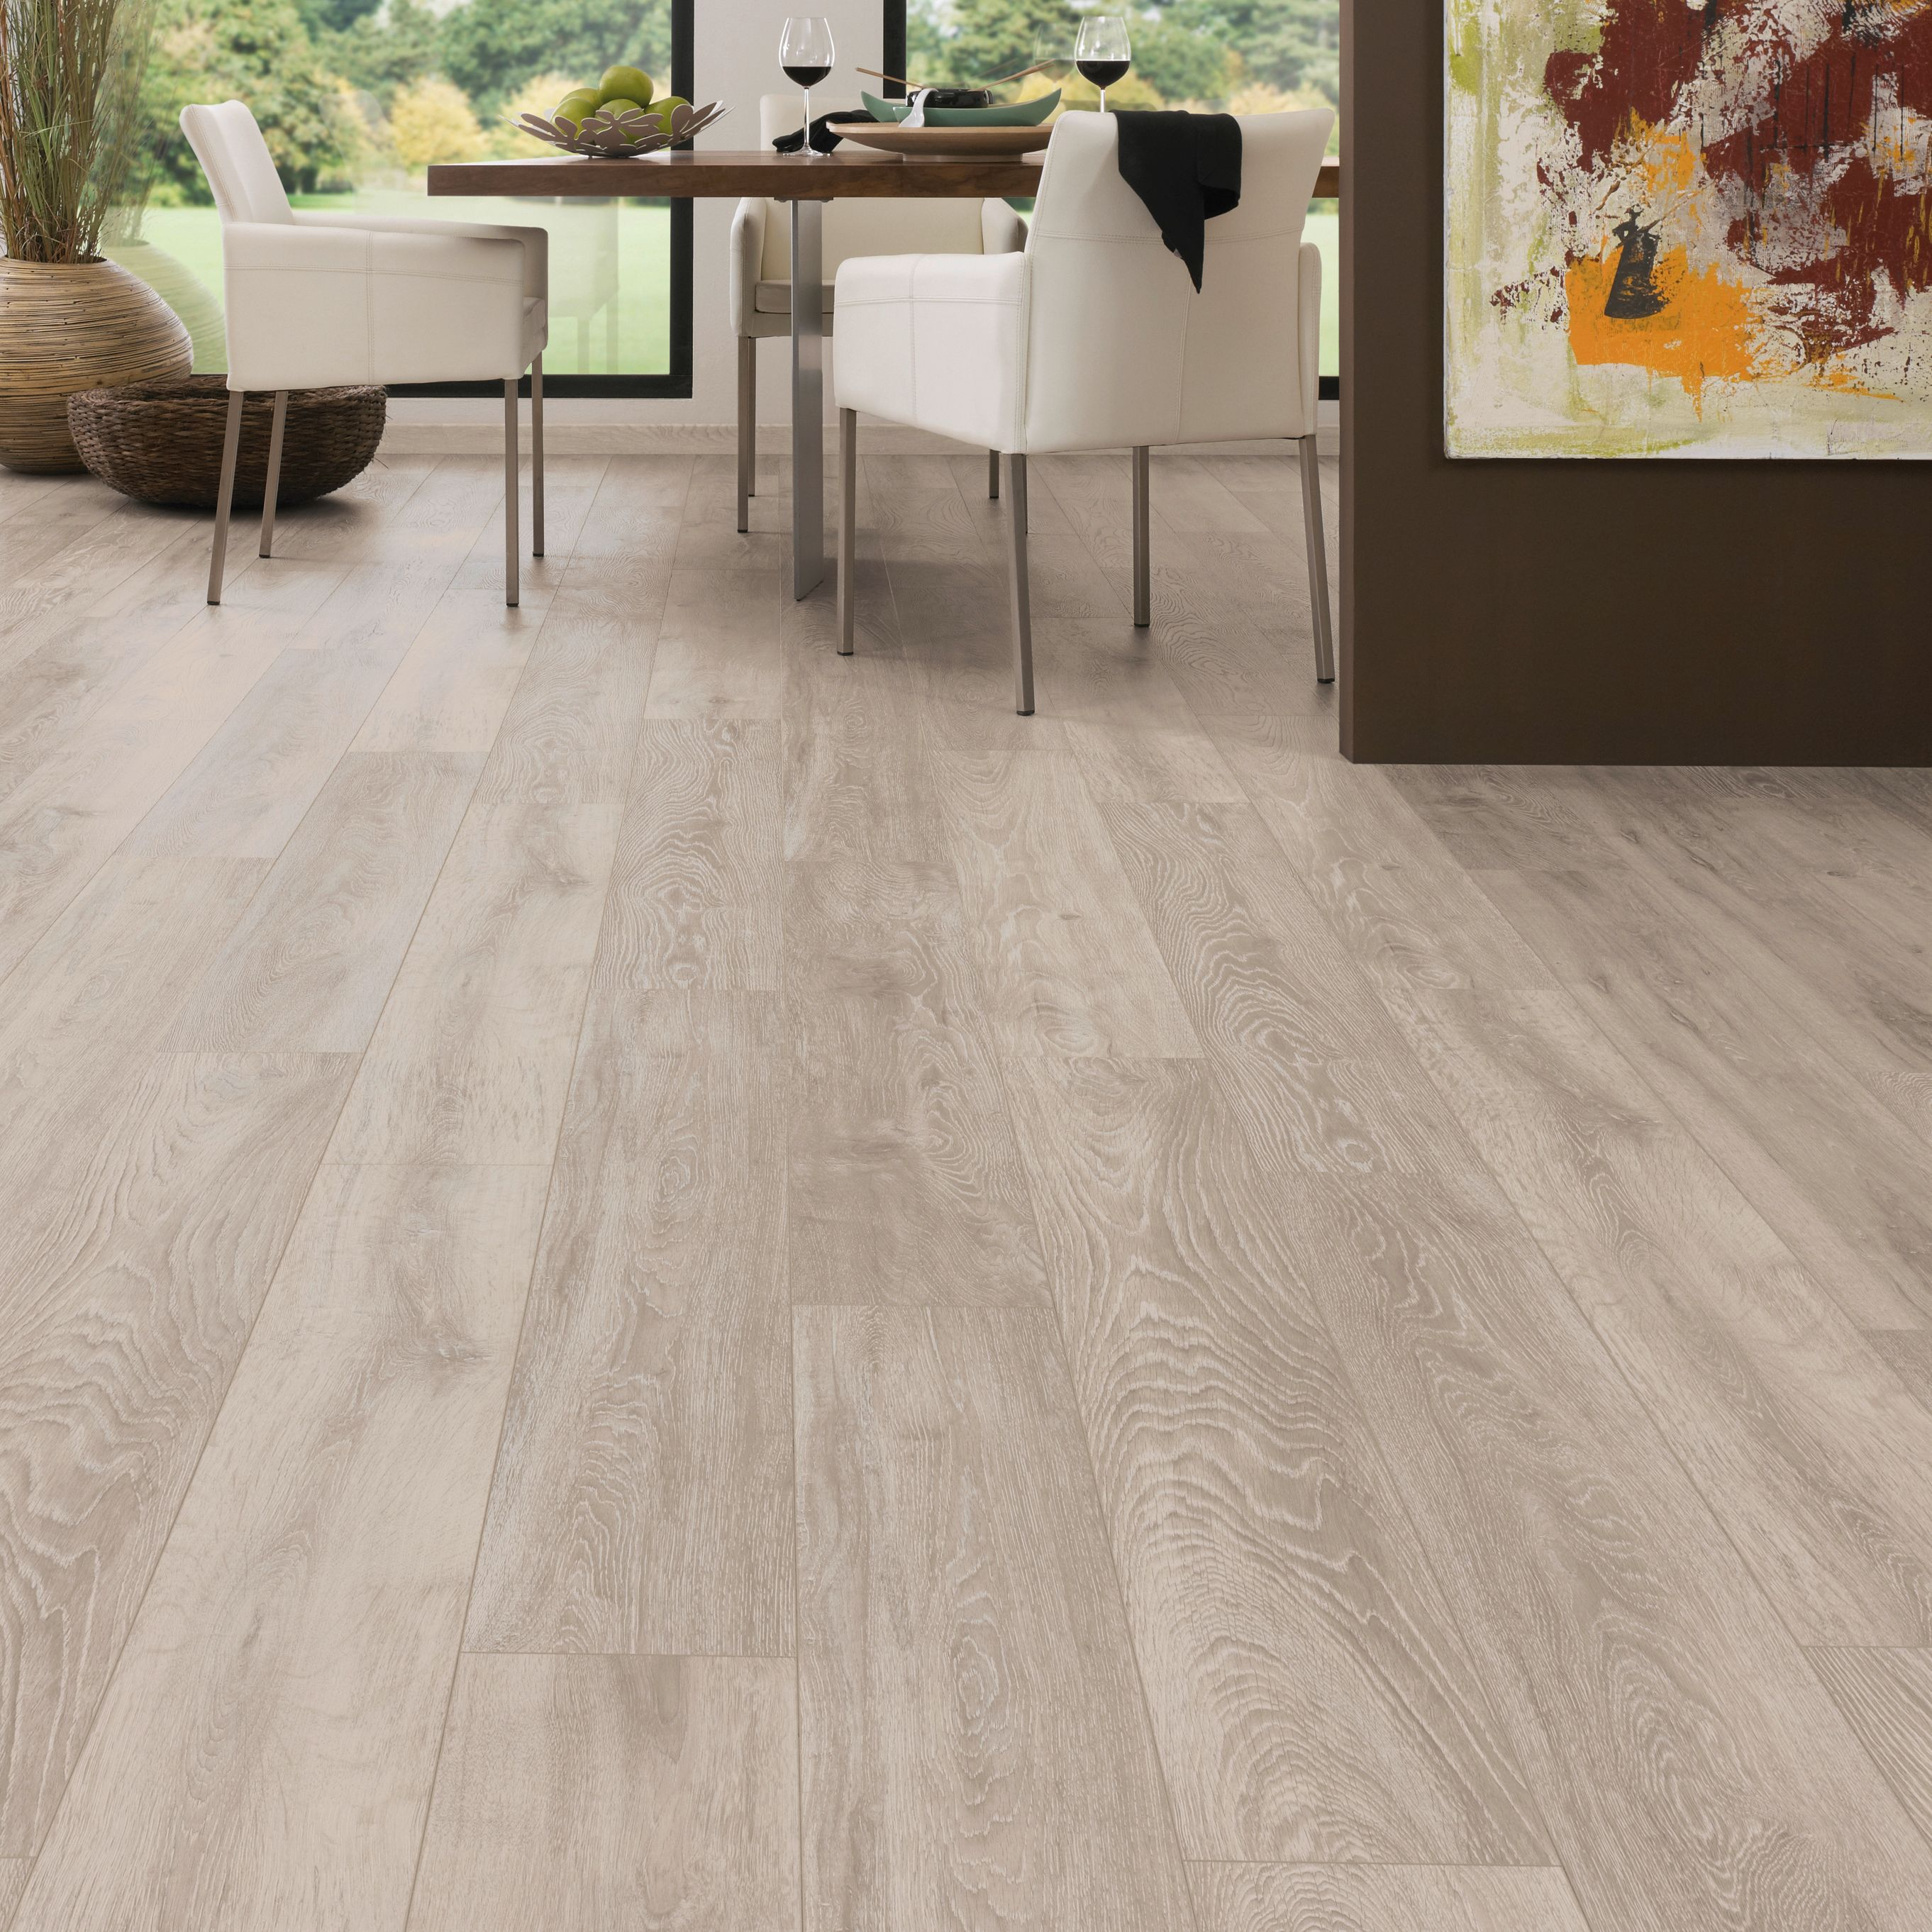 Amadeo boulder embossed laminate flooring m pack for Diy laminate flooring